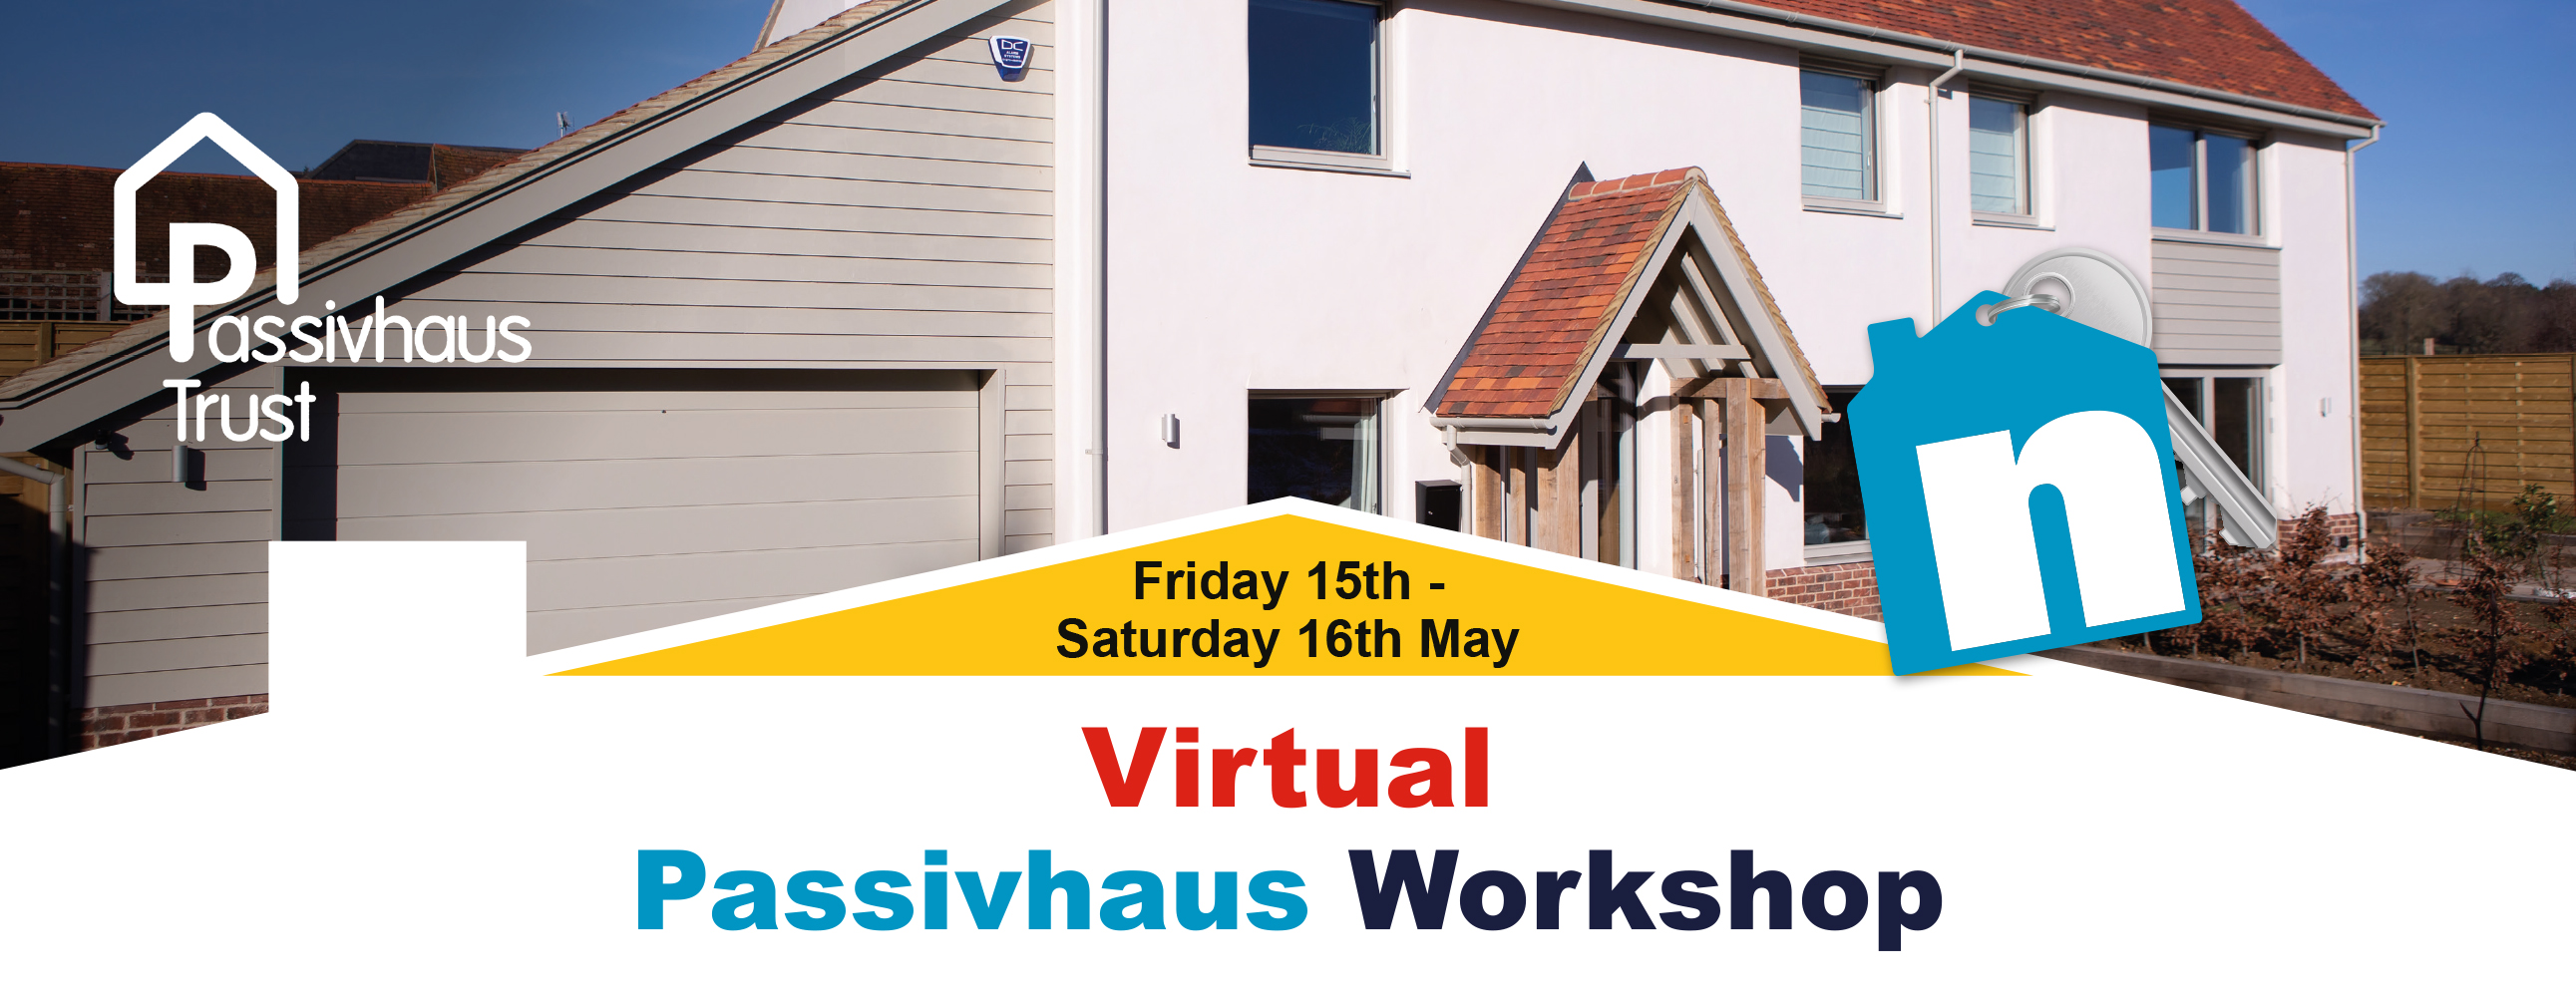 Virtual Passivhaus Workshop at NSBRC